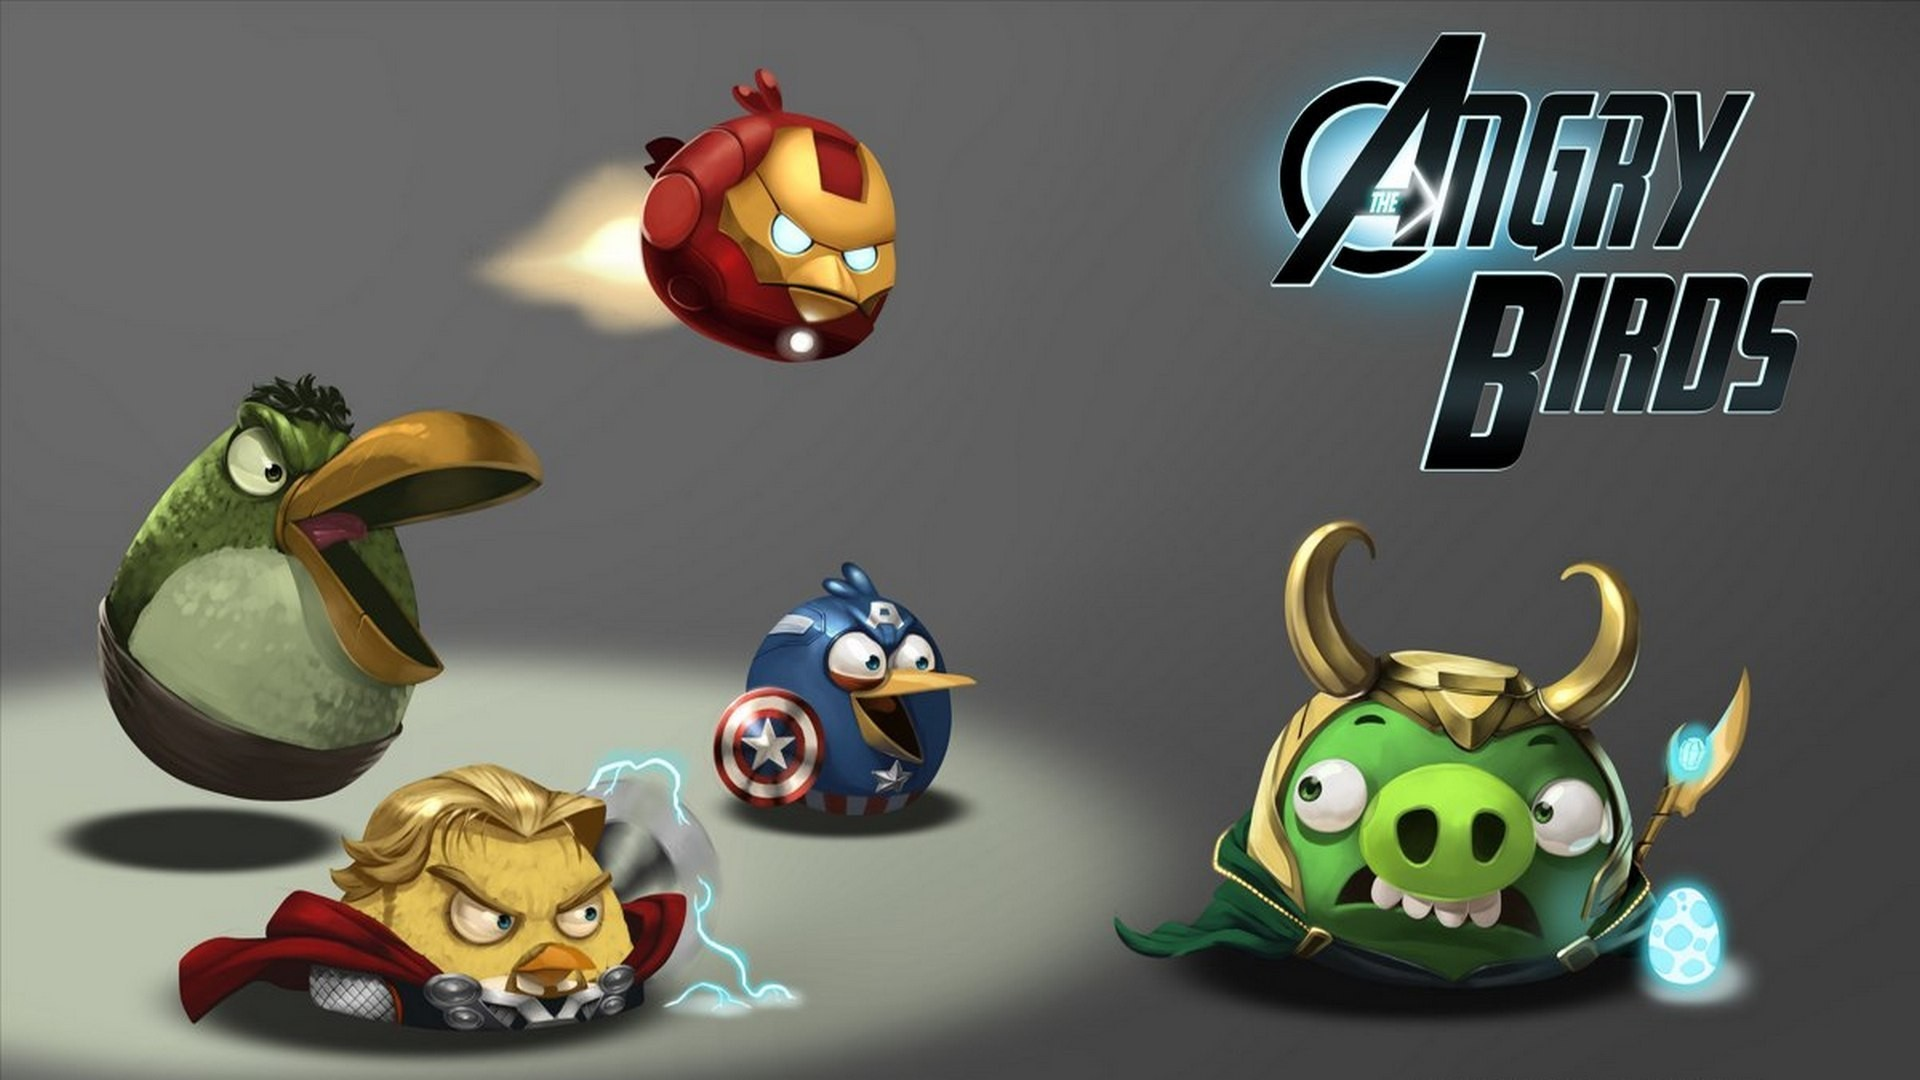 Angry Birds Star Wars Wallpaper 1920x1080